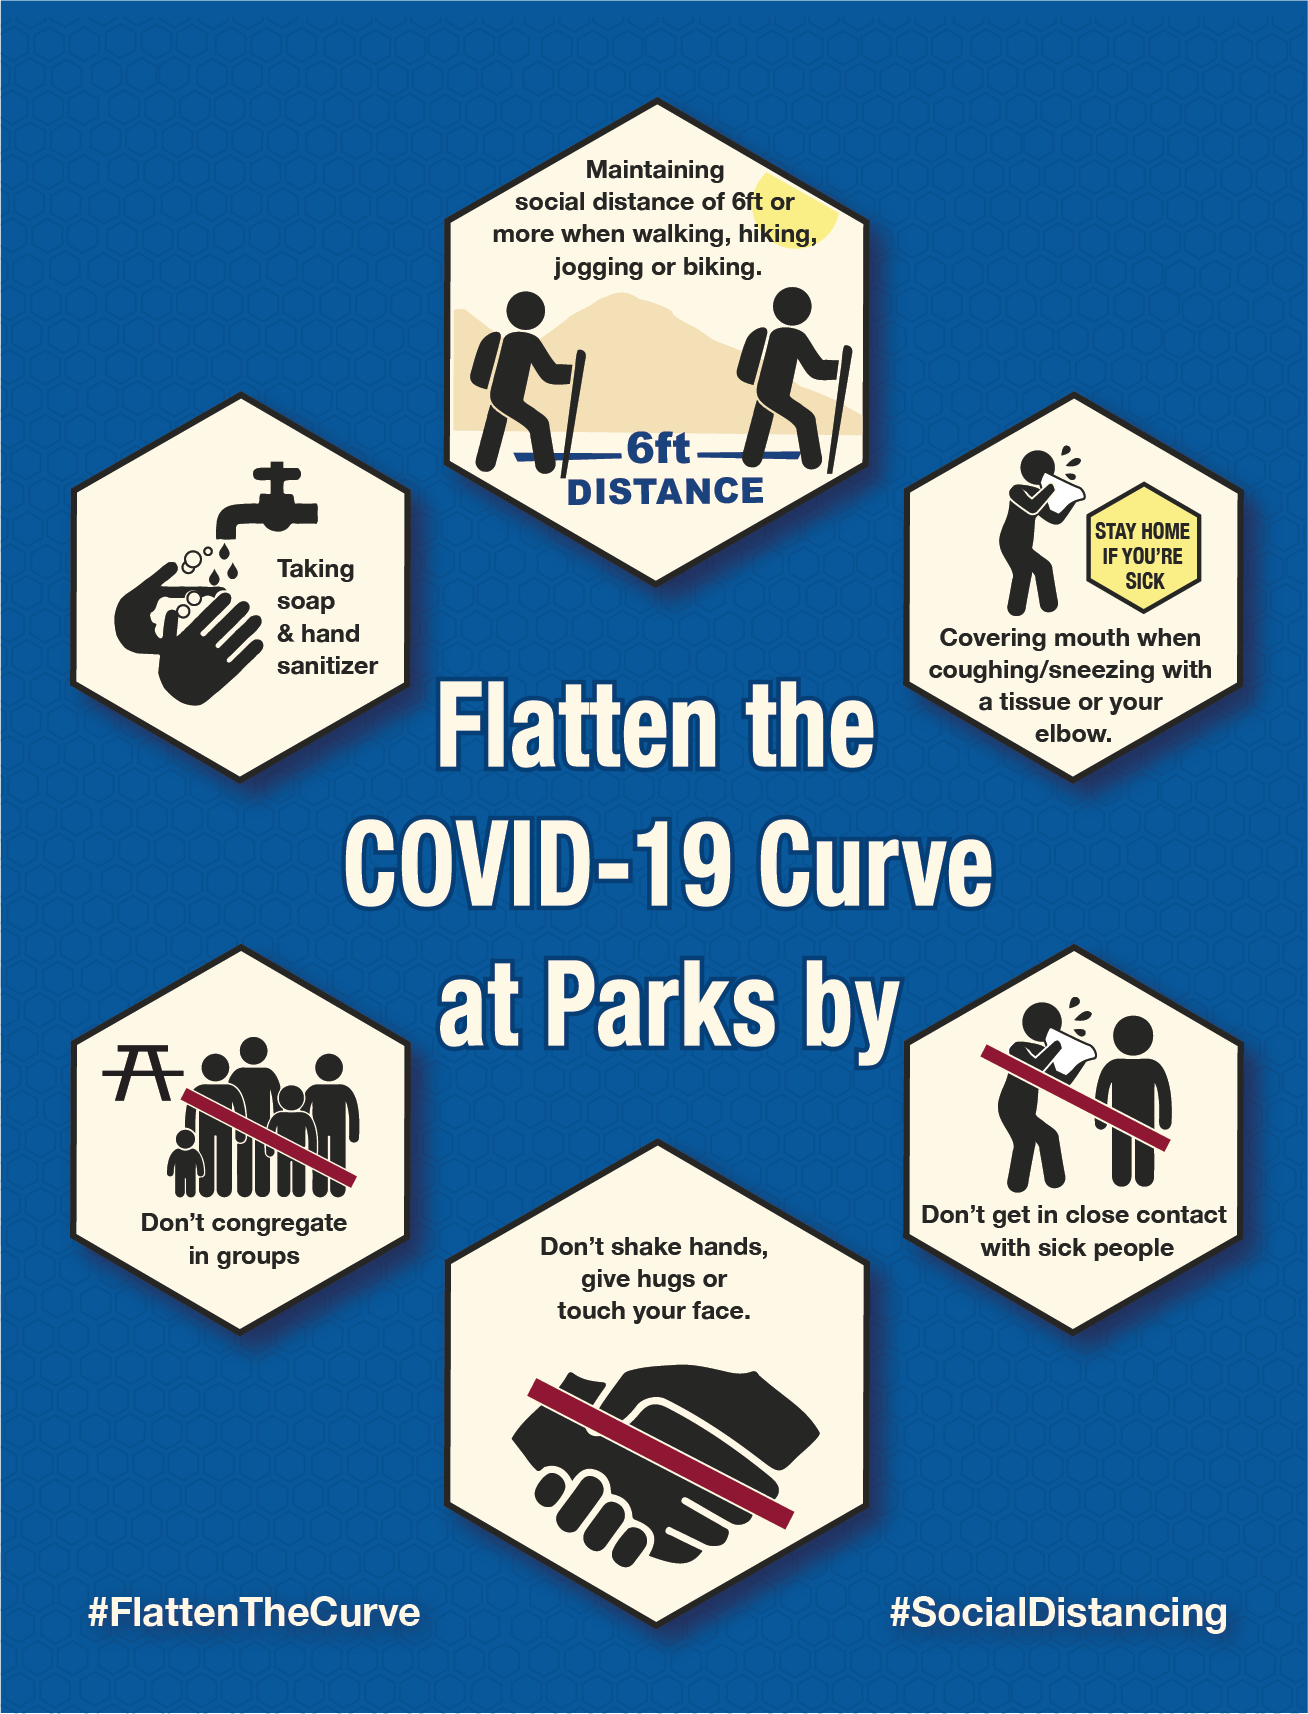 Flatten the COVID-19 Curve imagn